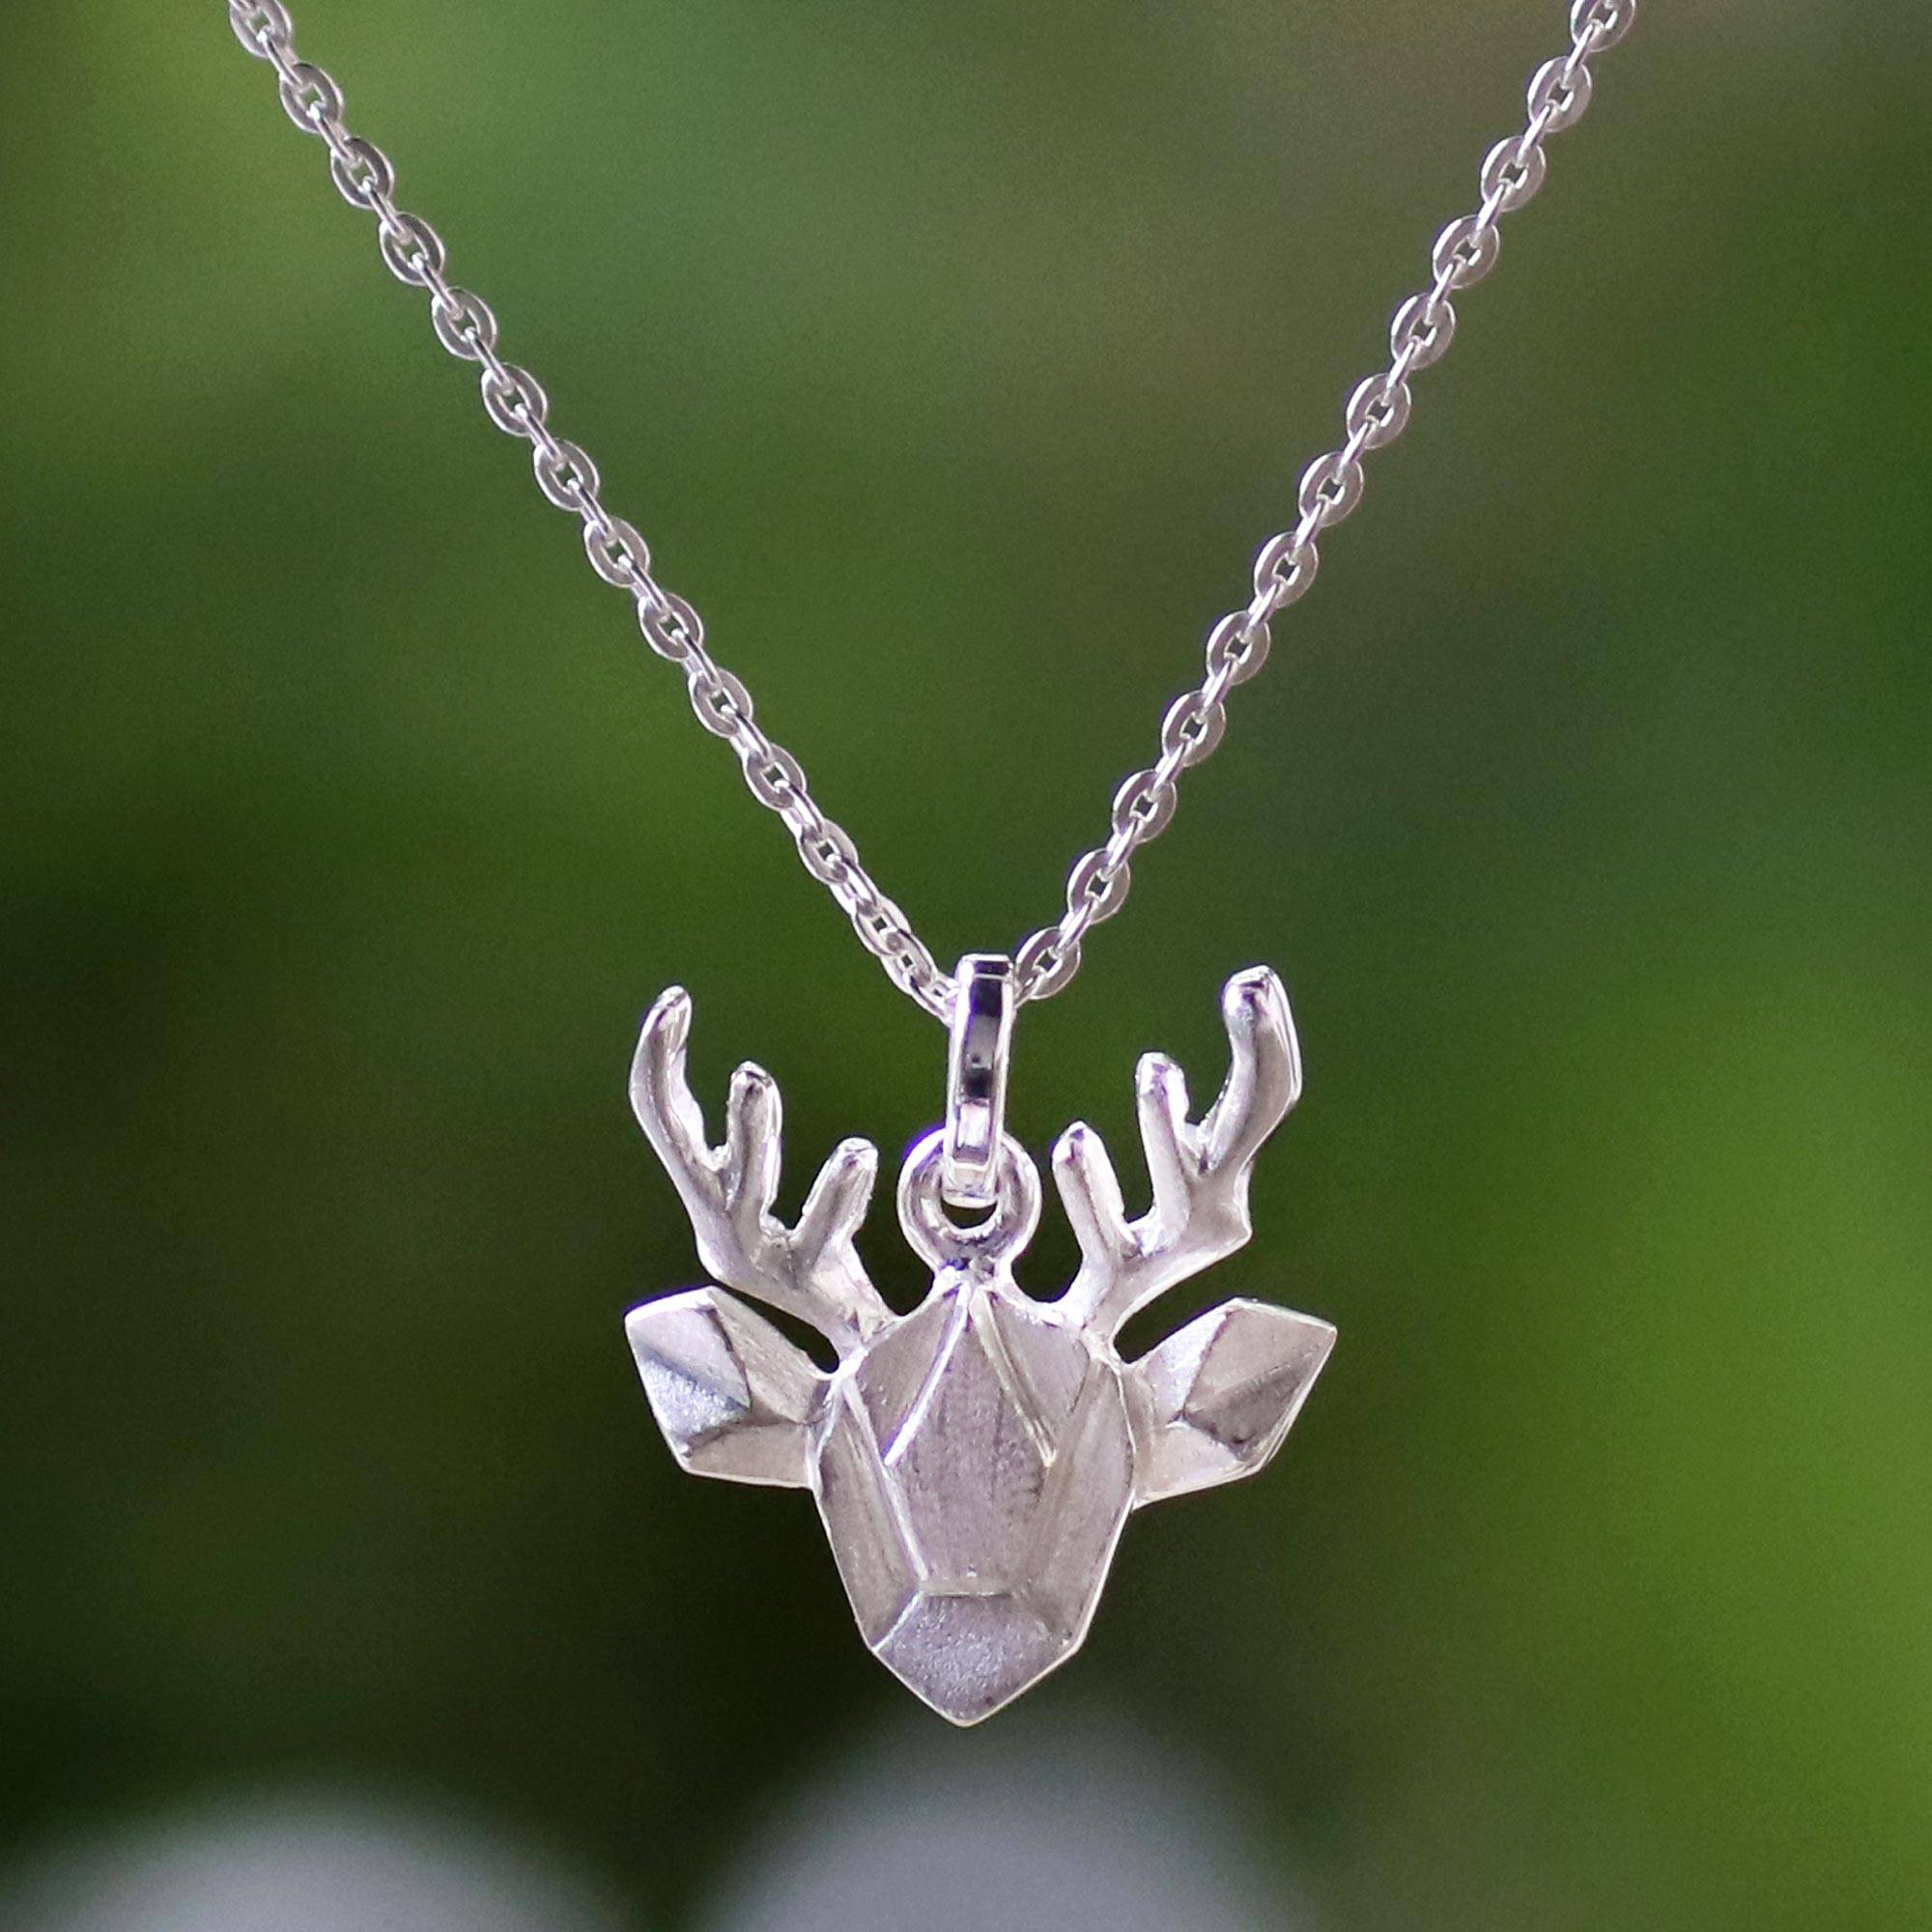 kind chain silver one sterling online jewelry shop of new origami on printed pendant a deer necklace